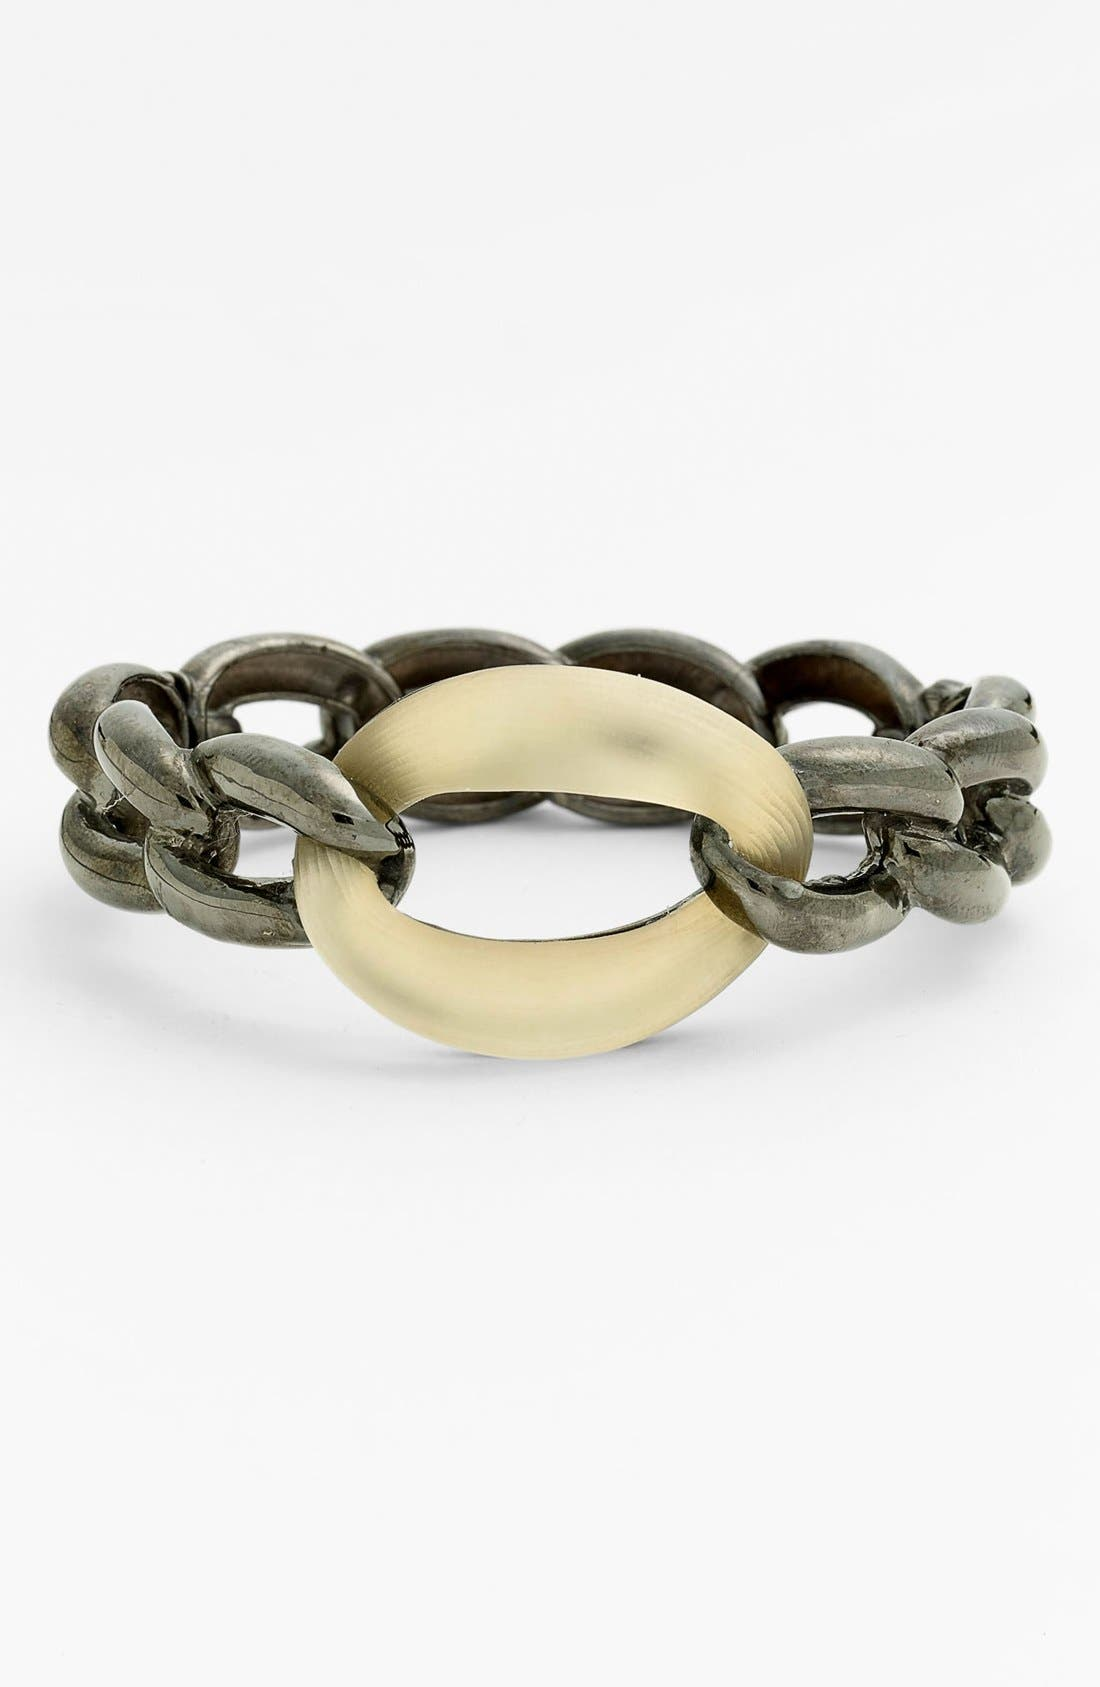 Main Image - Alexis Bittar 'Lucite® - Neo Bohemian' Link Hinged Bangle Bracelet (Nordstrom Exclusive)